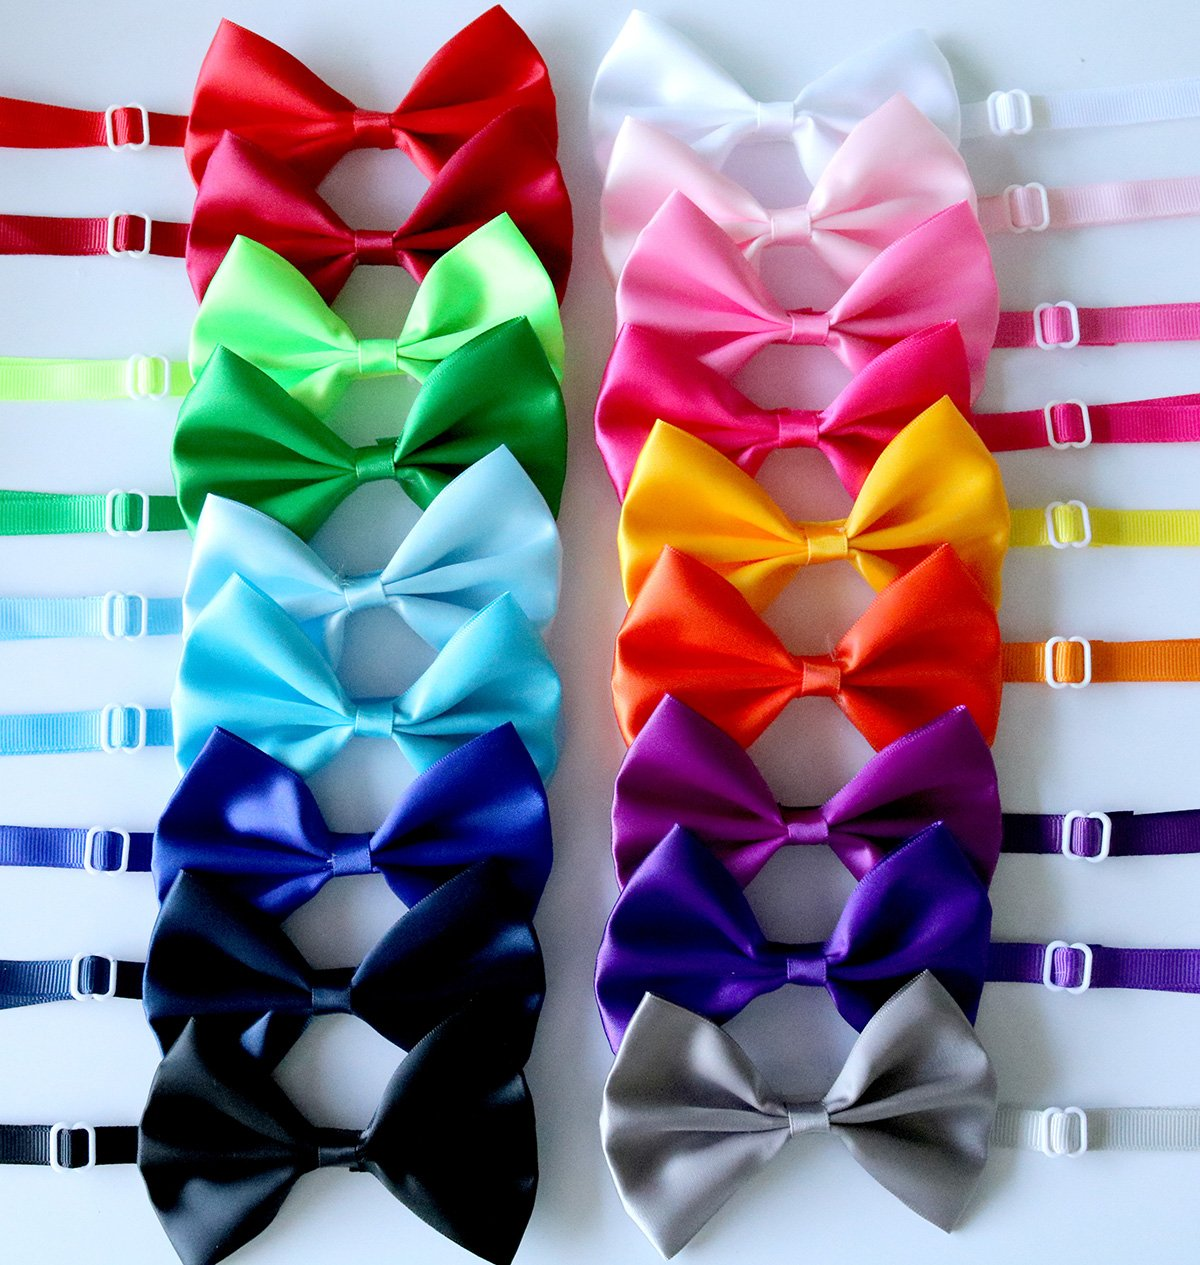 yagopet 20pcs Pet Dog Bow tie Dog Bowtie Collar Mix 18 Colors Solid Dog Ties Adjustable Pet Pet Collars Dog Grooming Accessories by yagopet